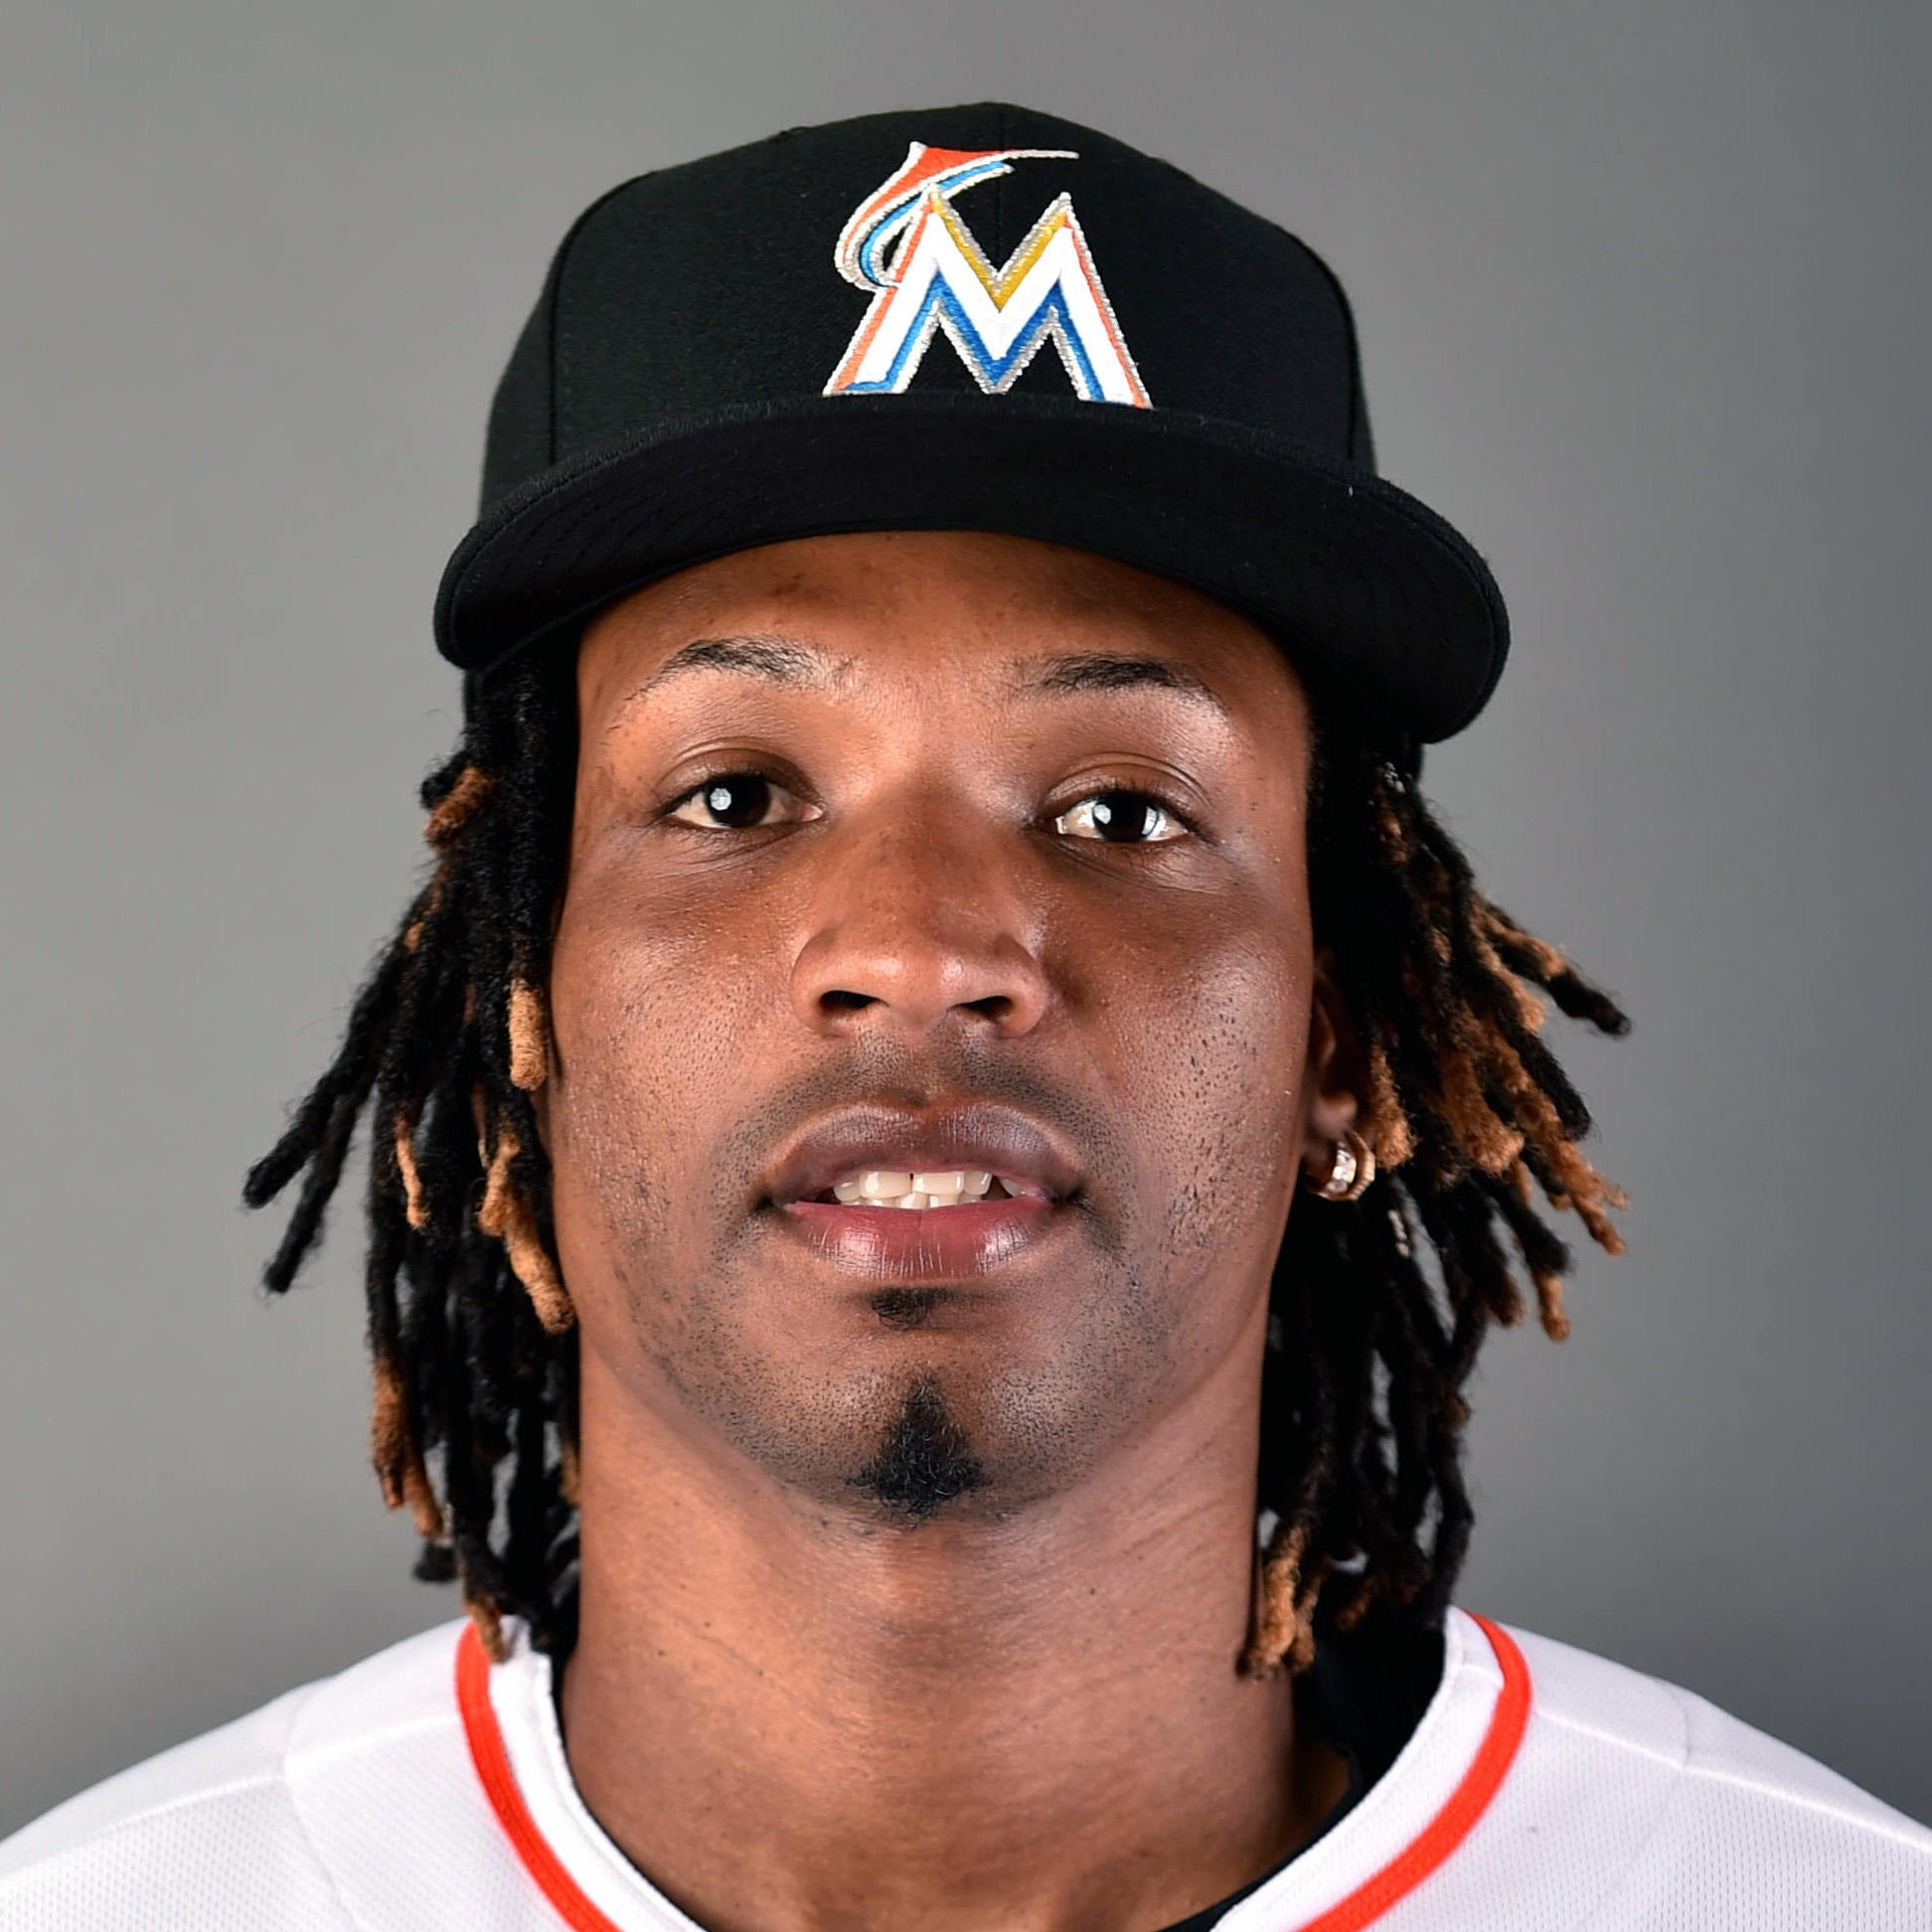 Jose Urena (R) Headshot